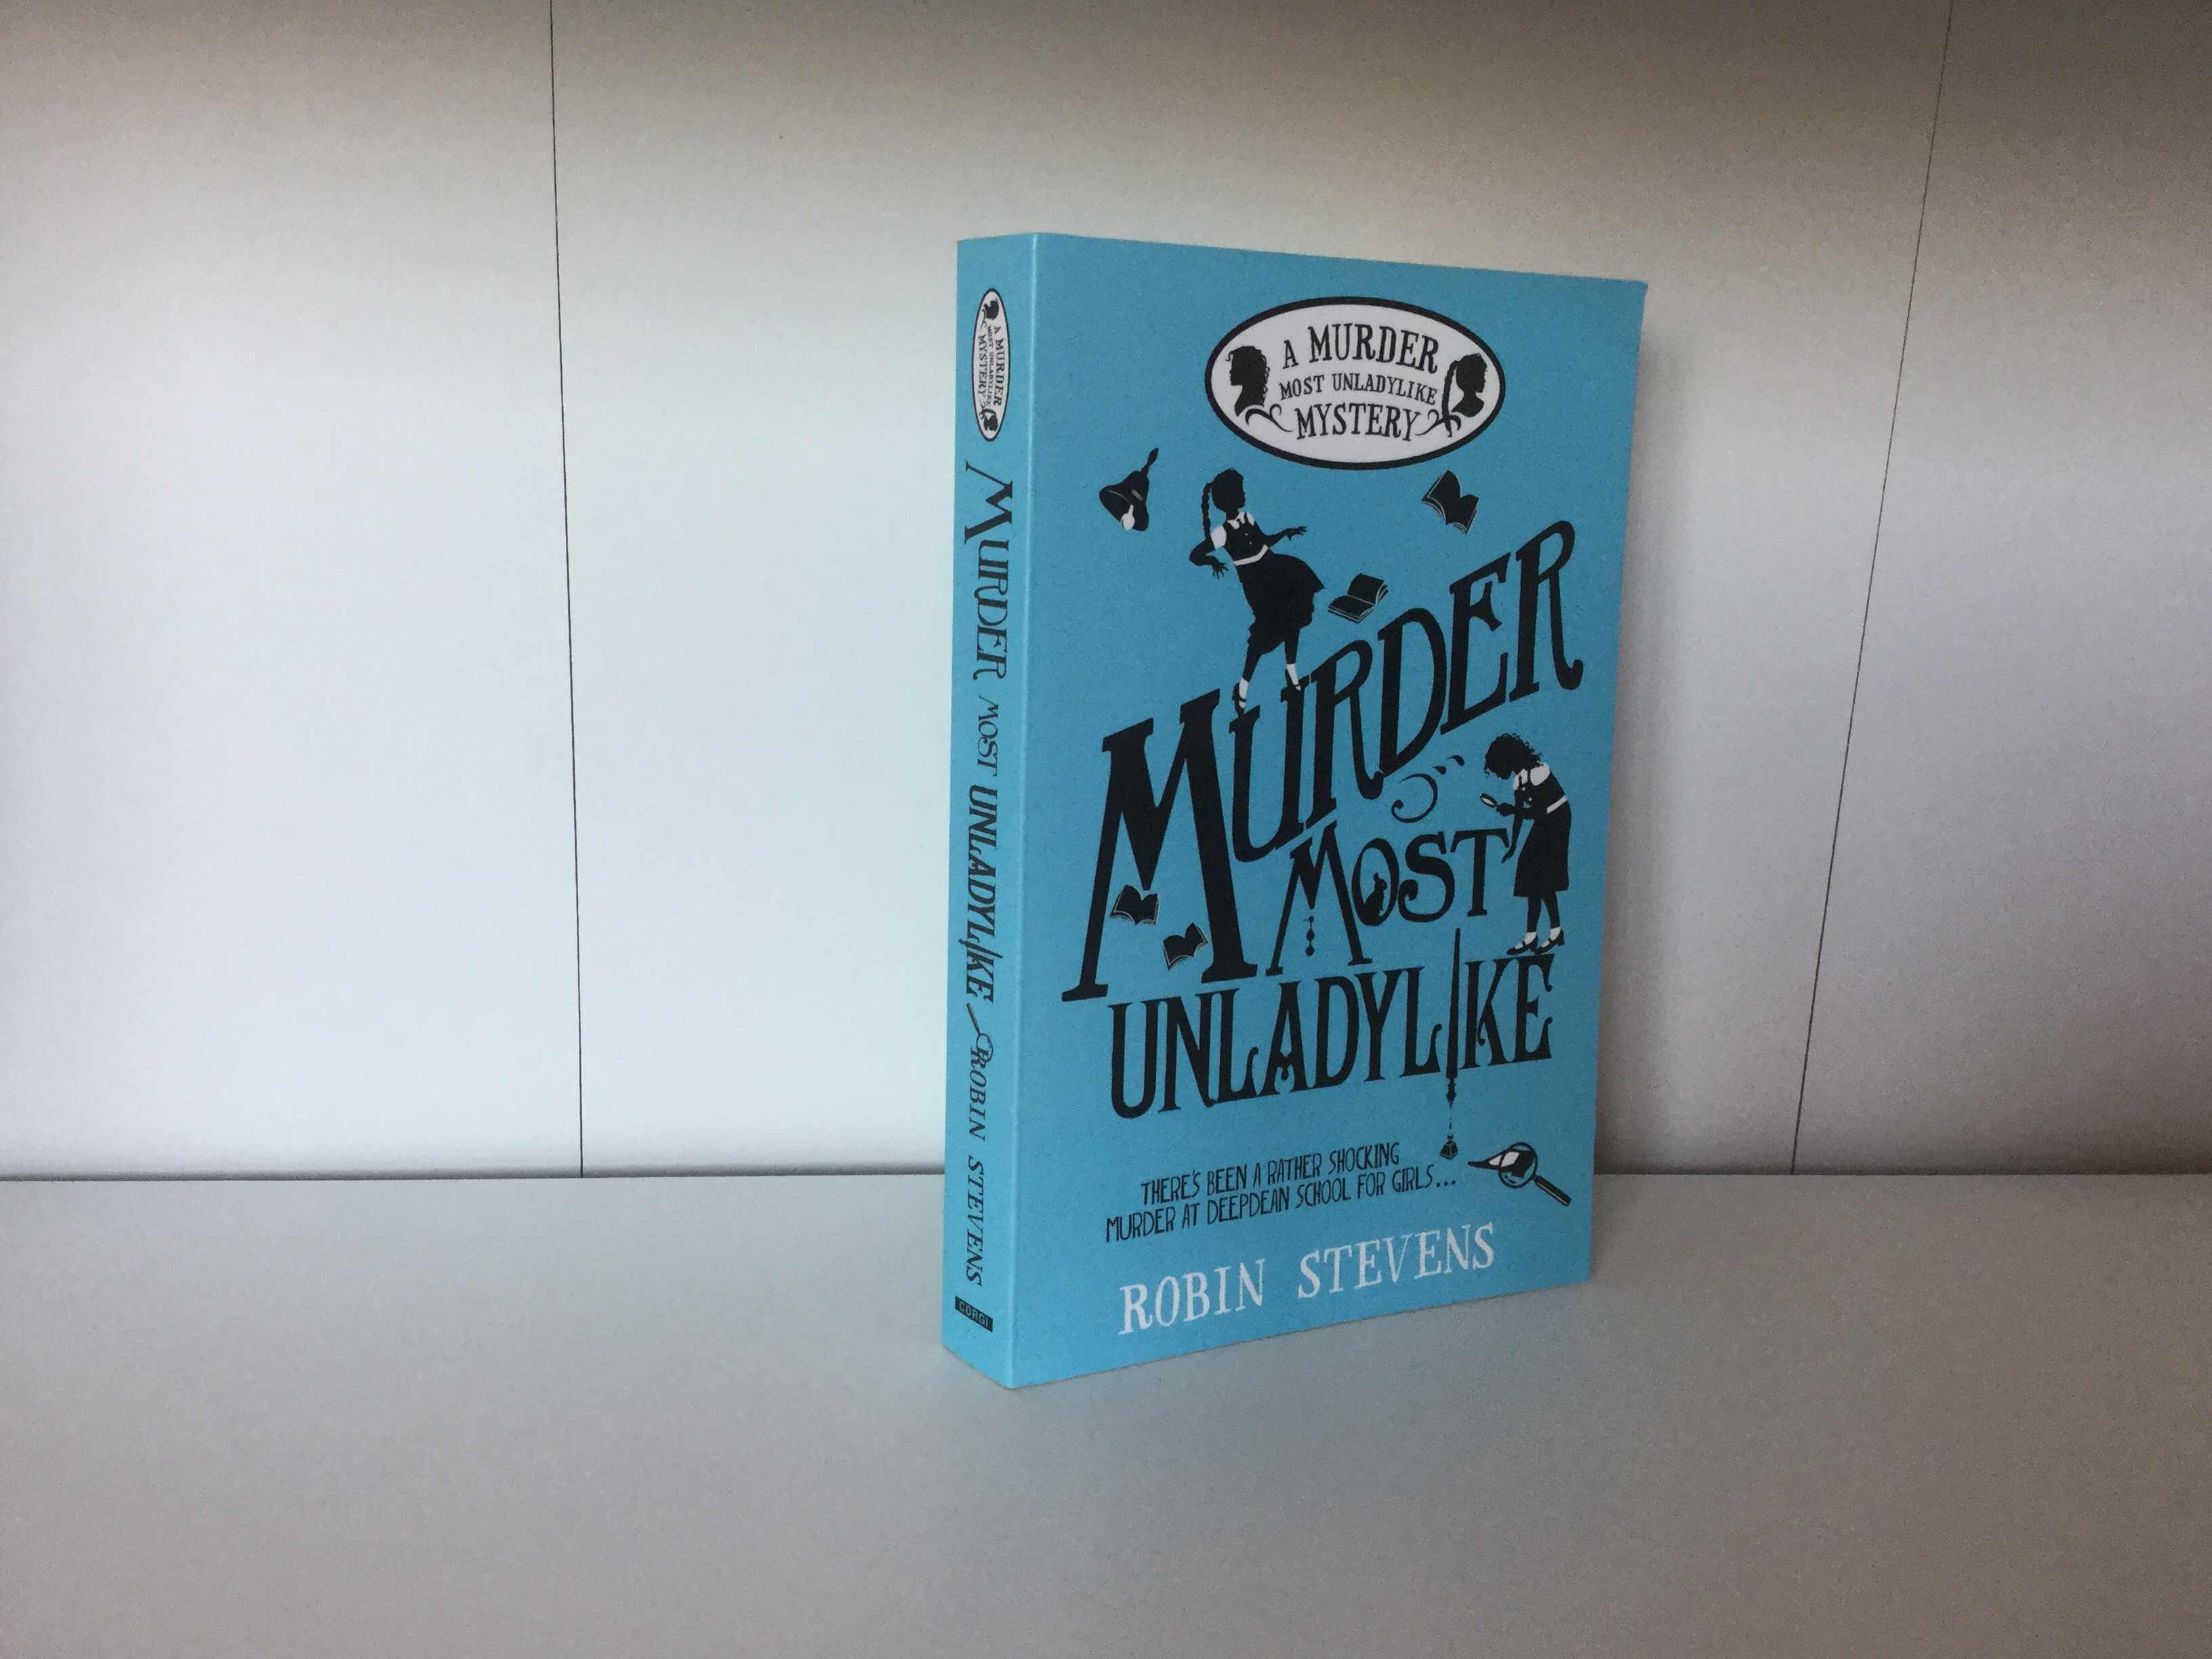 The cover of Murder Most Unladylike by Robin Stevens